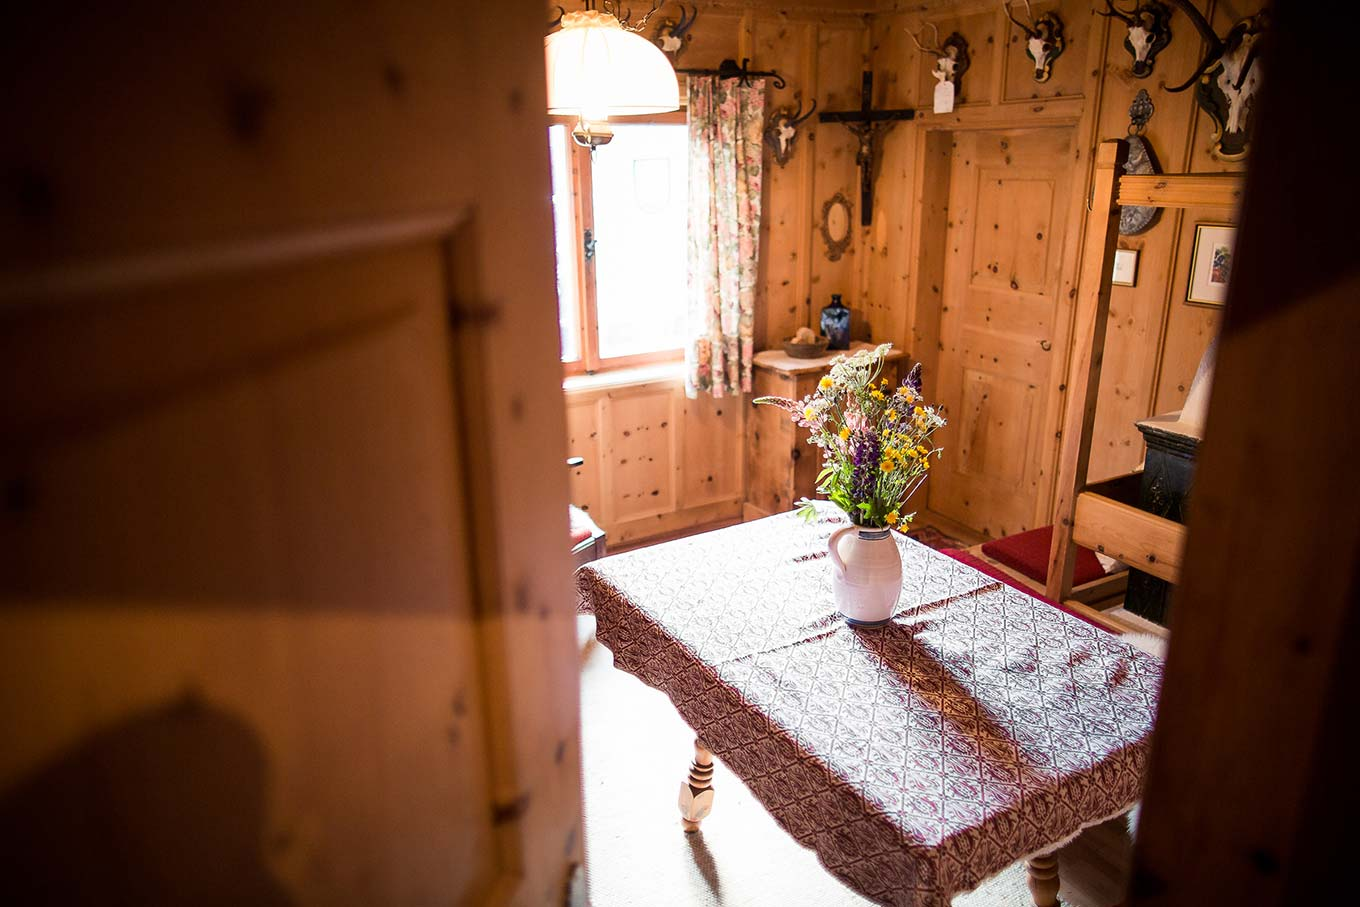 Cosy traditional Tyrolean Stube - sitting room